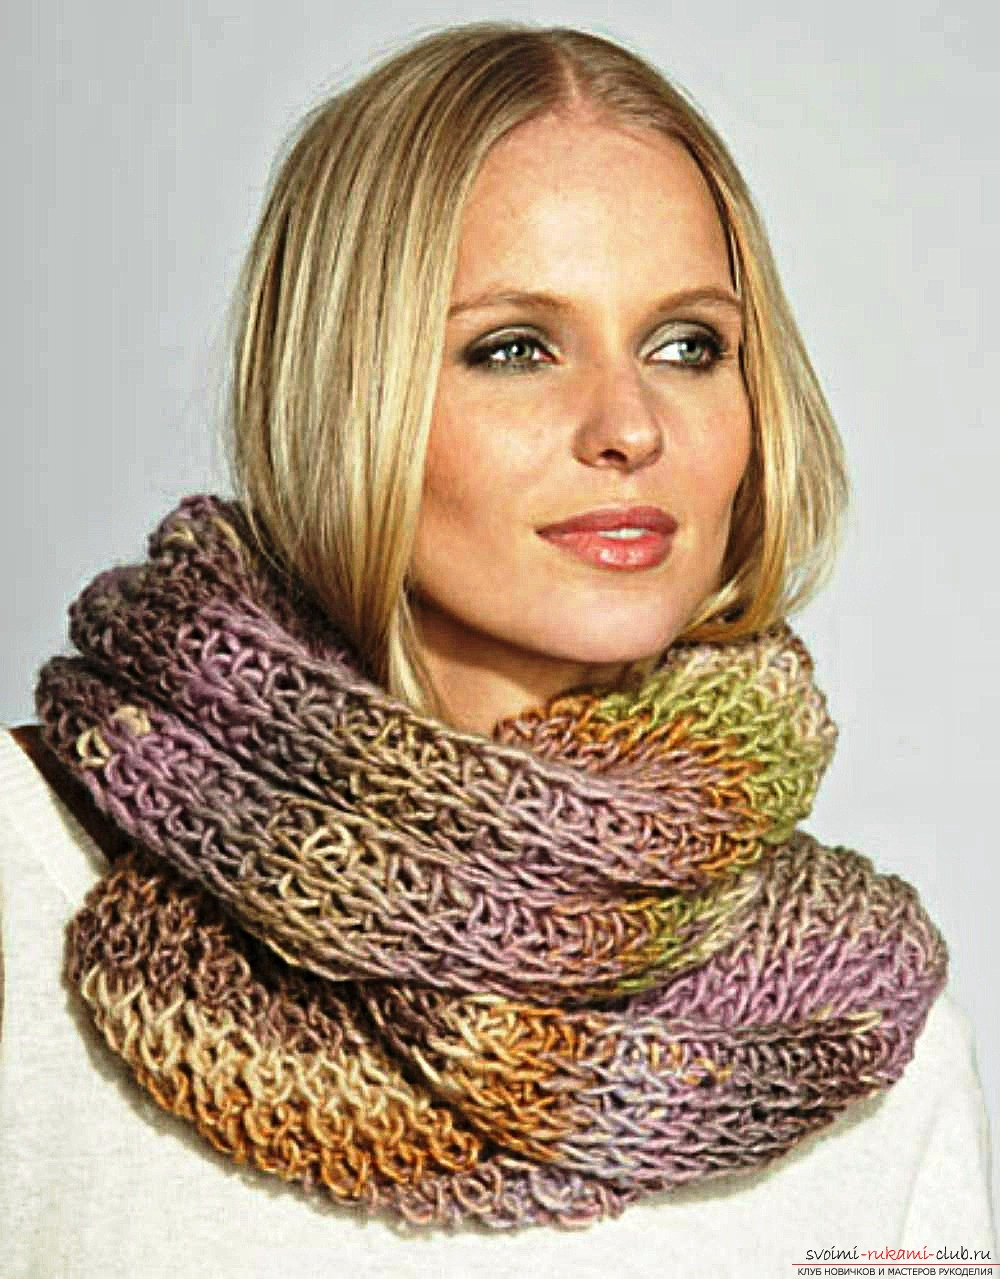 knitted knitting needles with a delicate openwork scarf-yoke. Photo №4